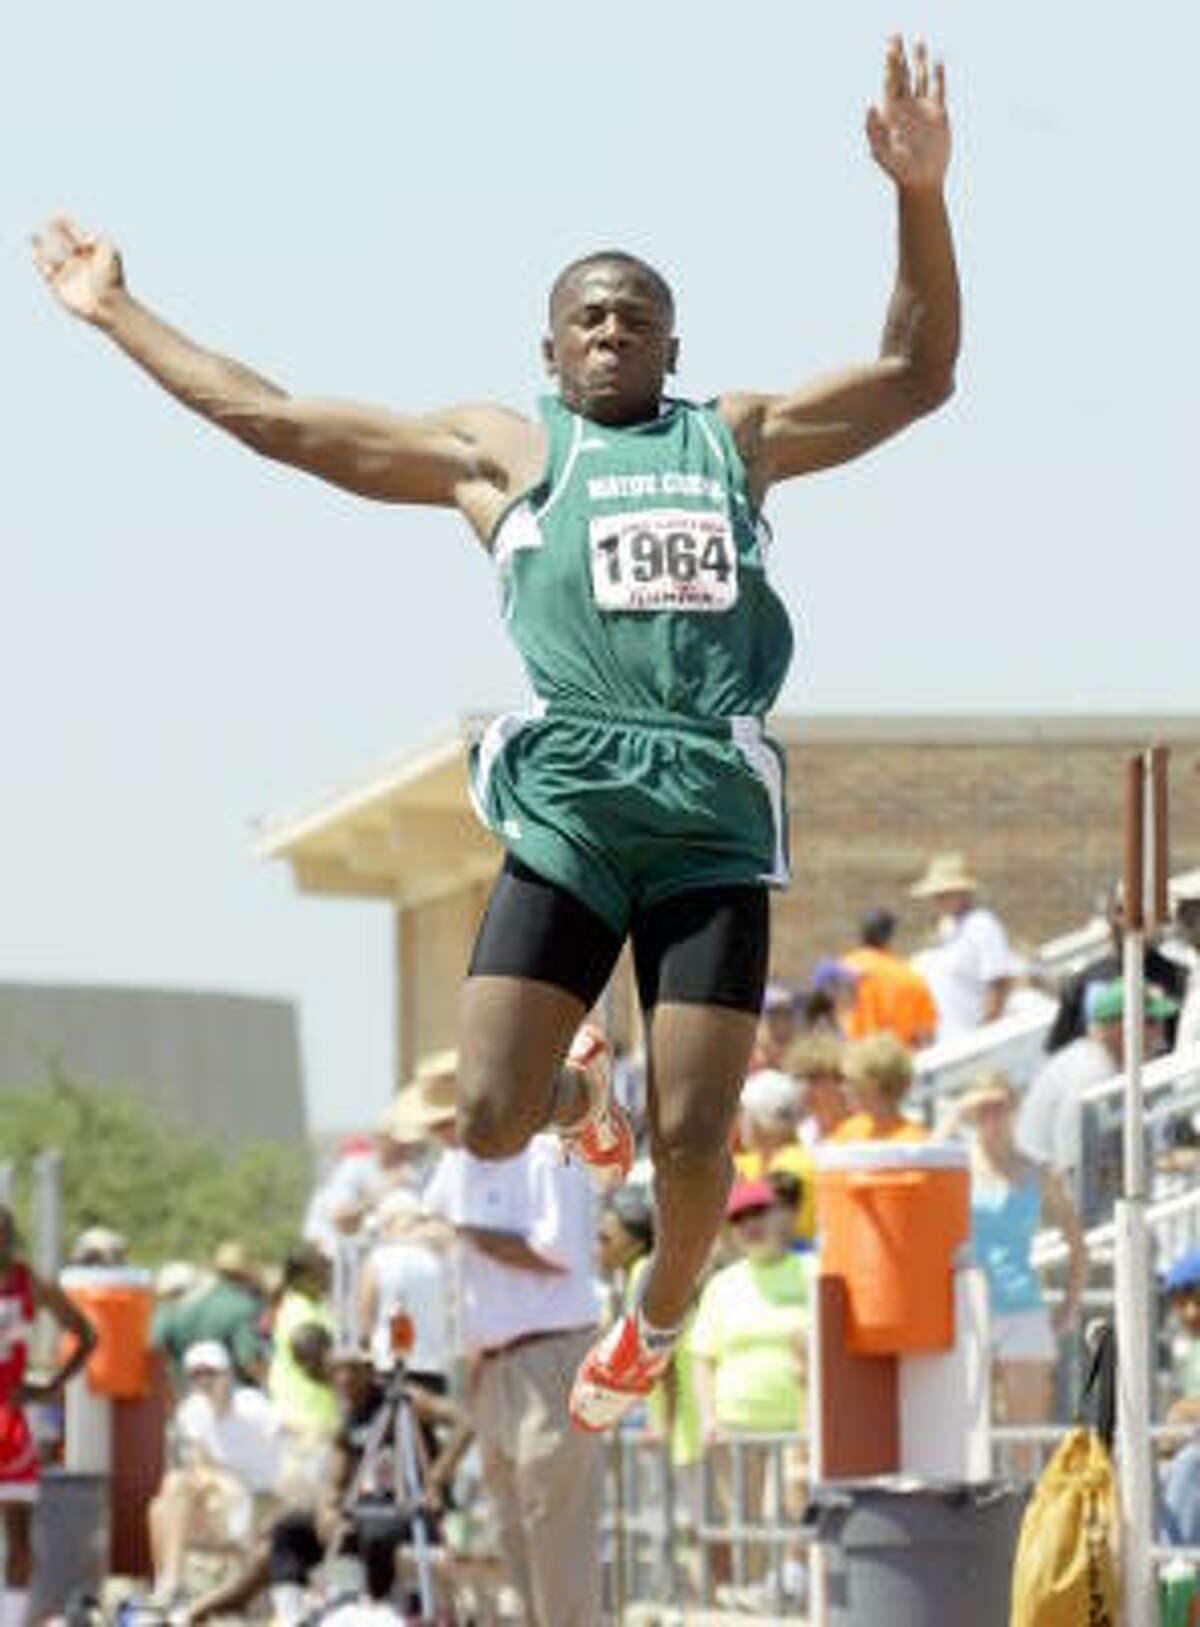 Creek's Emerson Sanders jumped 47 feet 3.50 inches to take silver in the triple jump.